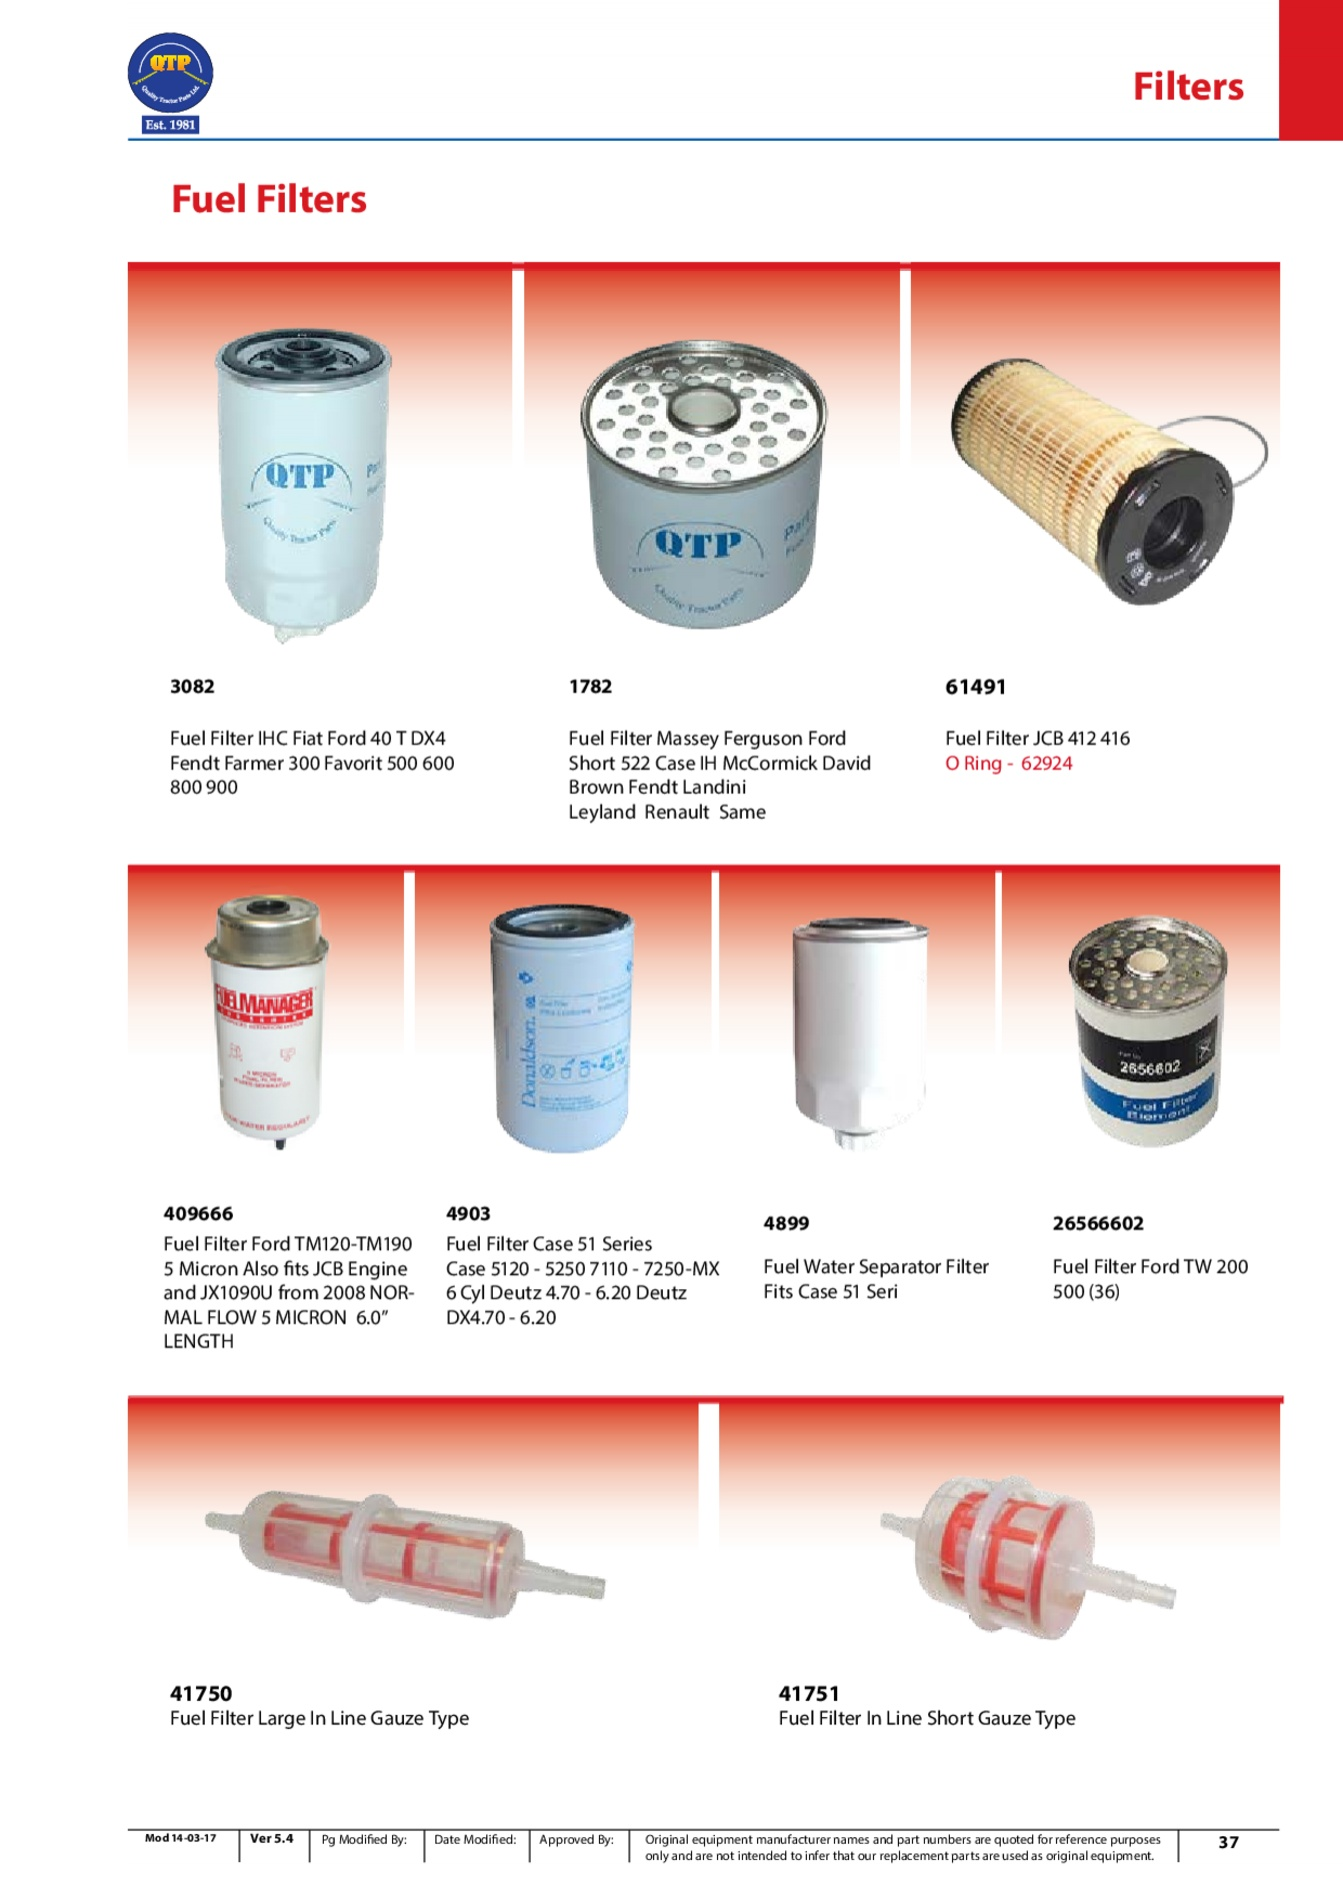 Text Flow Fuel Filter Free Download Wiring Diagram Diesel Inline Ihc Fiat Ford 40 T Dx4 Quality Tractor Parts Along With 30 Micron